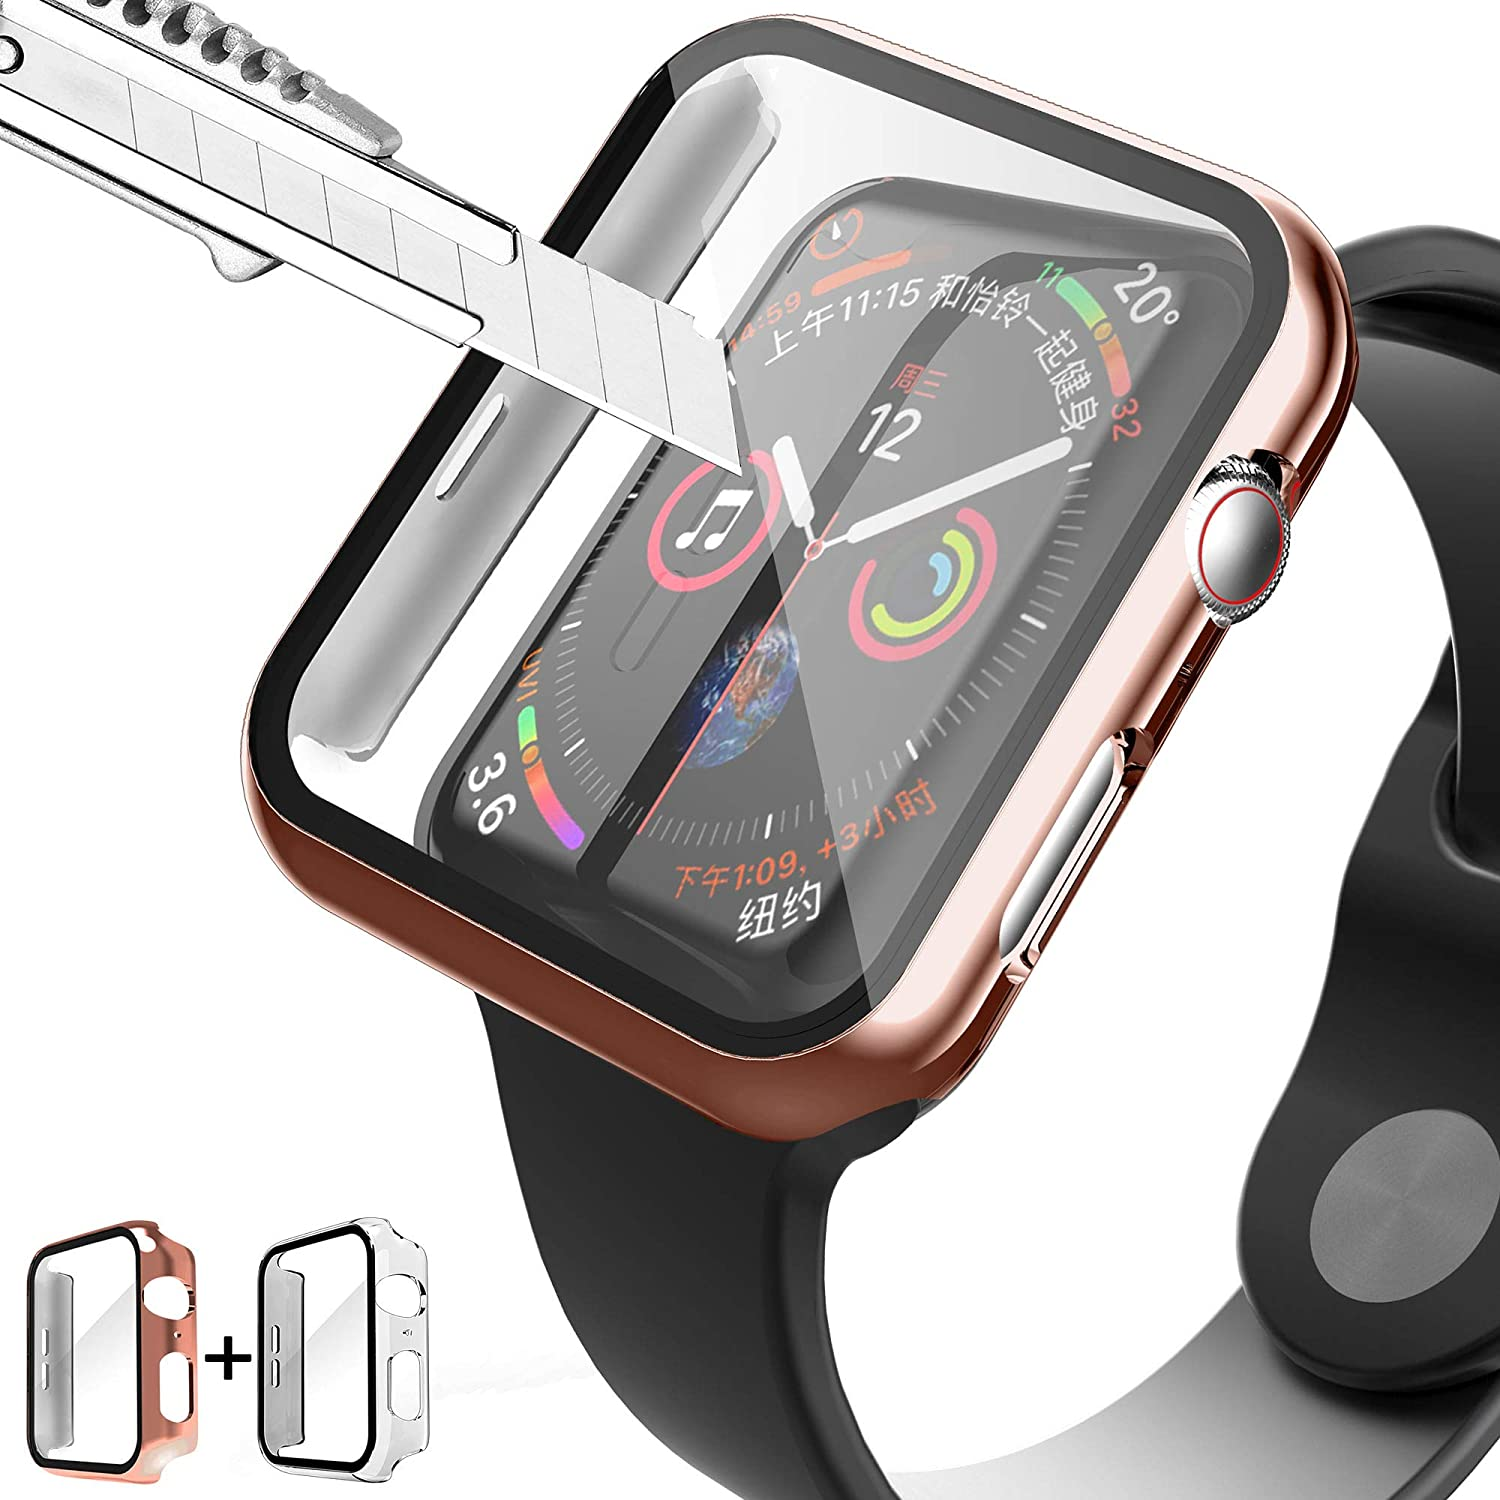 PROATL Full Cover Hard PC Case with 9H Tempered Glass Screen Protector Touch Sensitive iWatch Case Compatible with Apple Watch Series 3/2/1 38mm/42mm (2Packed, Clear+Rose Gold/ 42mm)